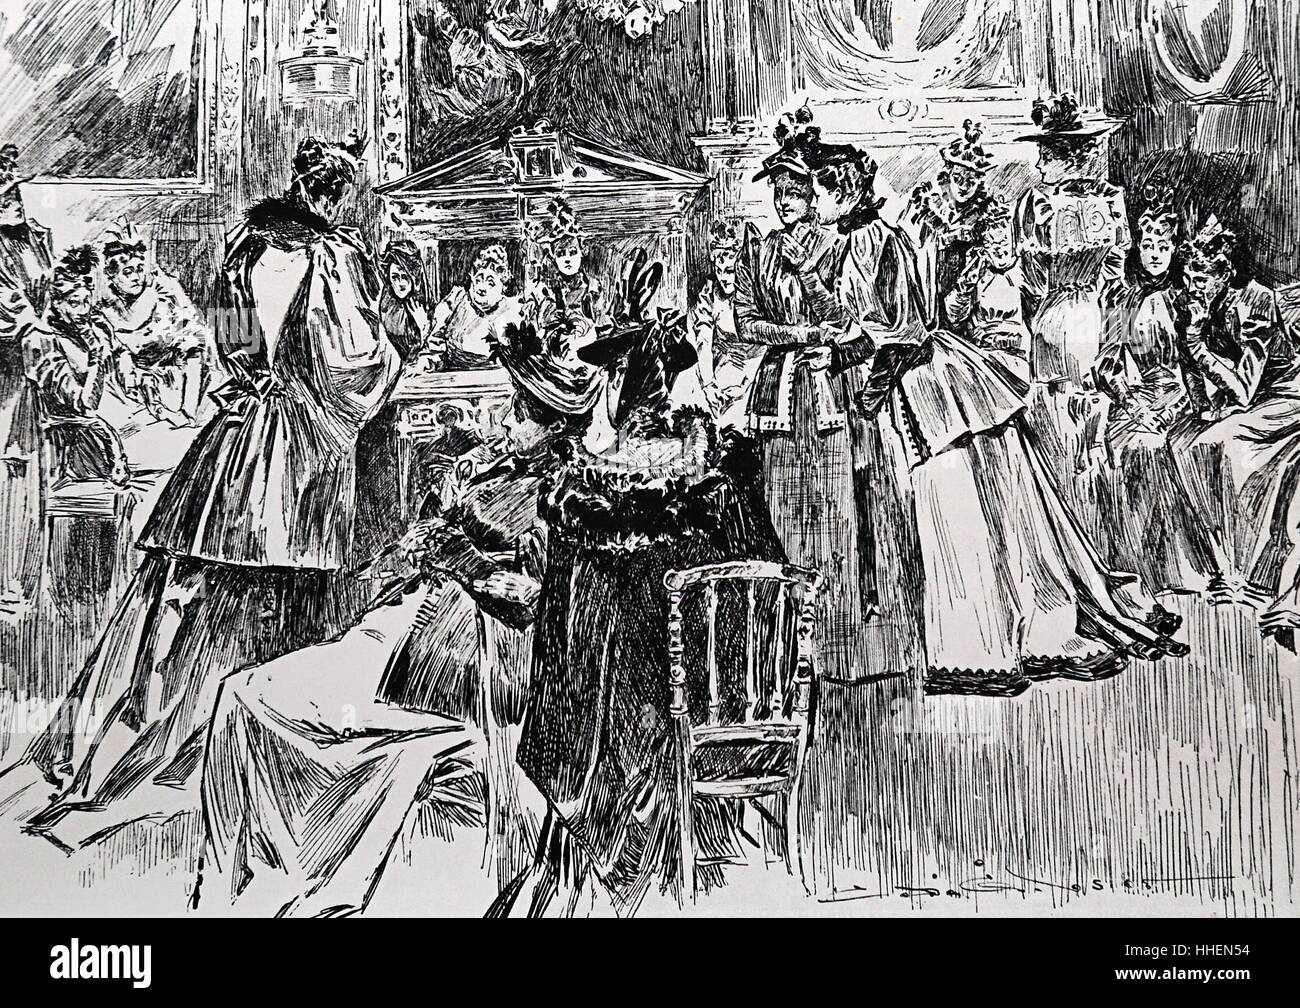 Illustration depicting High Society in the Golden Age of New York. Dated 19th Century - Stock Image